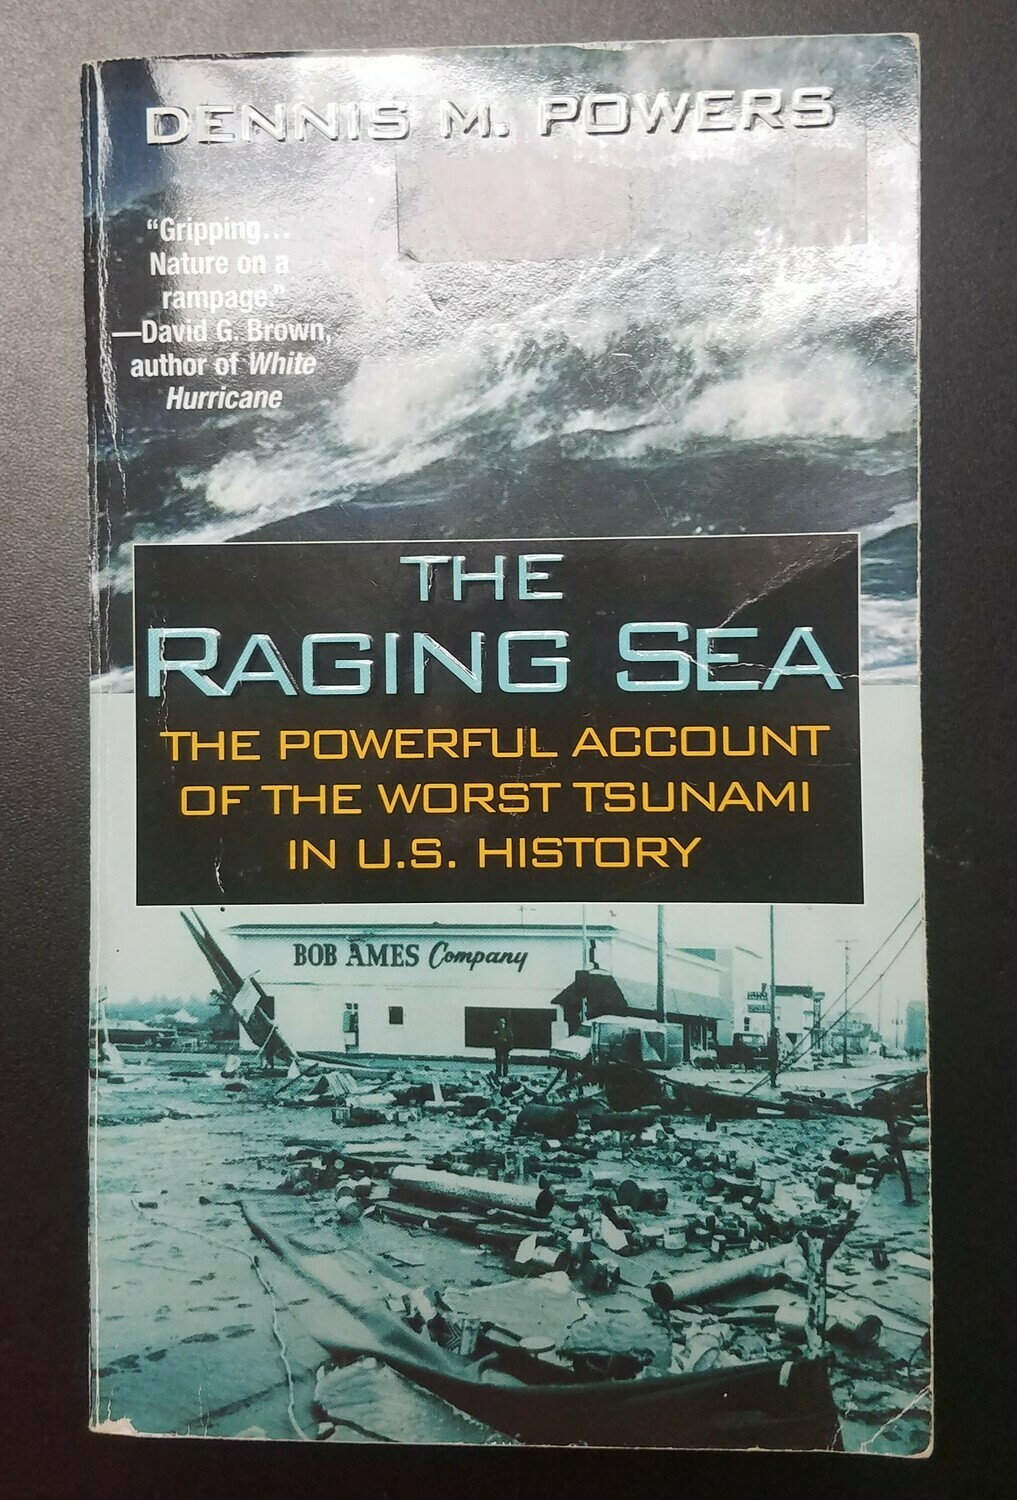 The Raging Sea by Dennis M. Powers